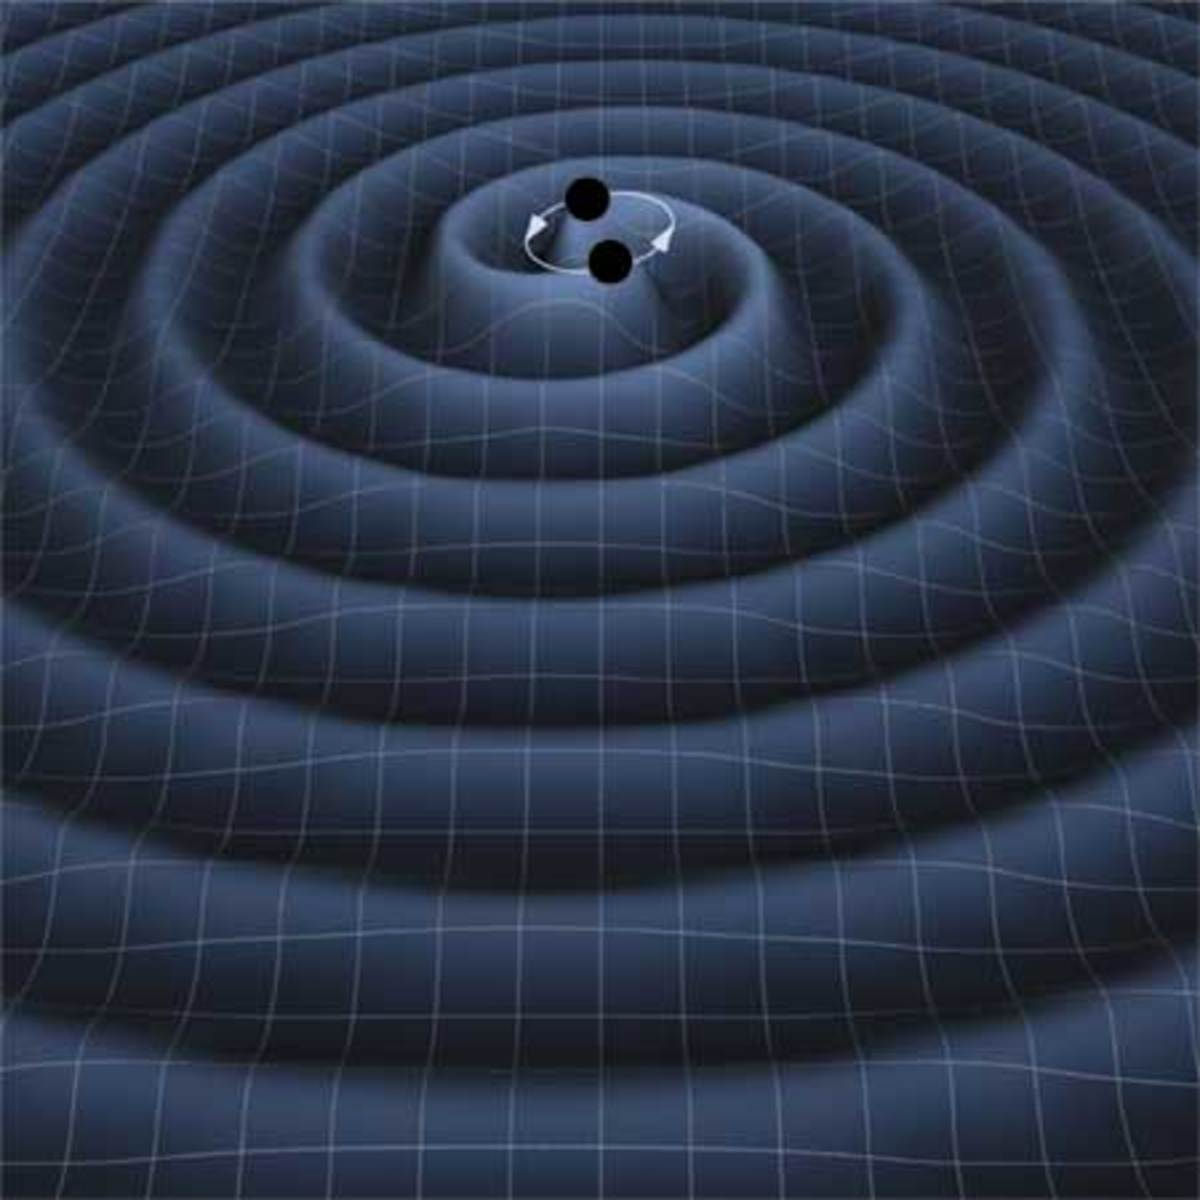 Gravitational waves as generated by two rotating objects in space.